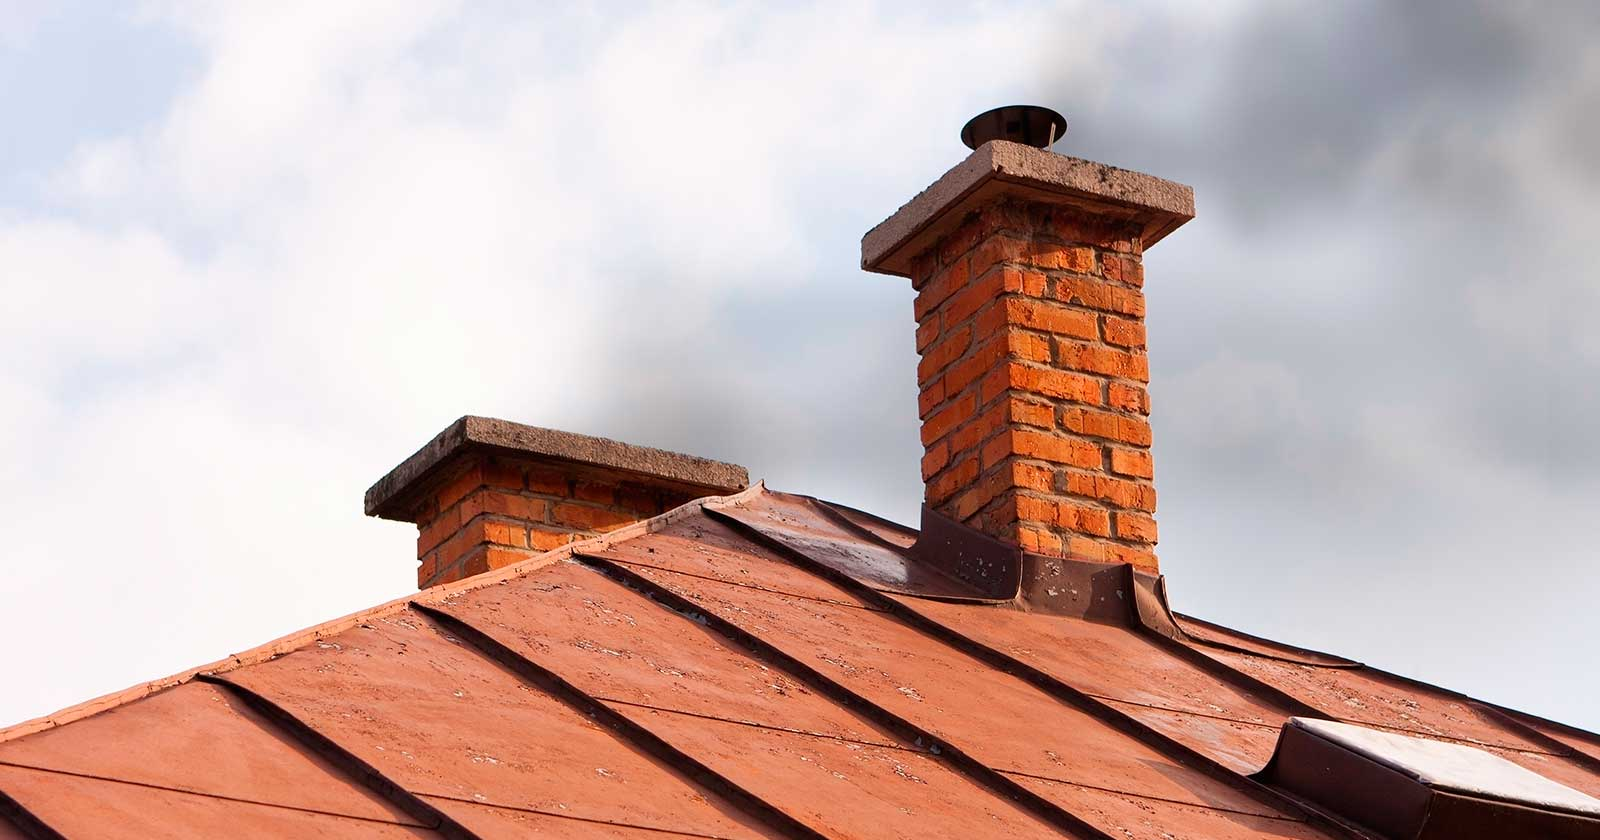 Chimney Installation and Cleaning Services